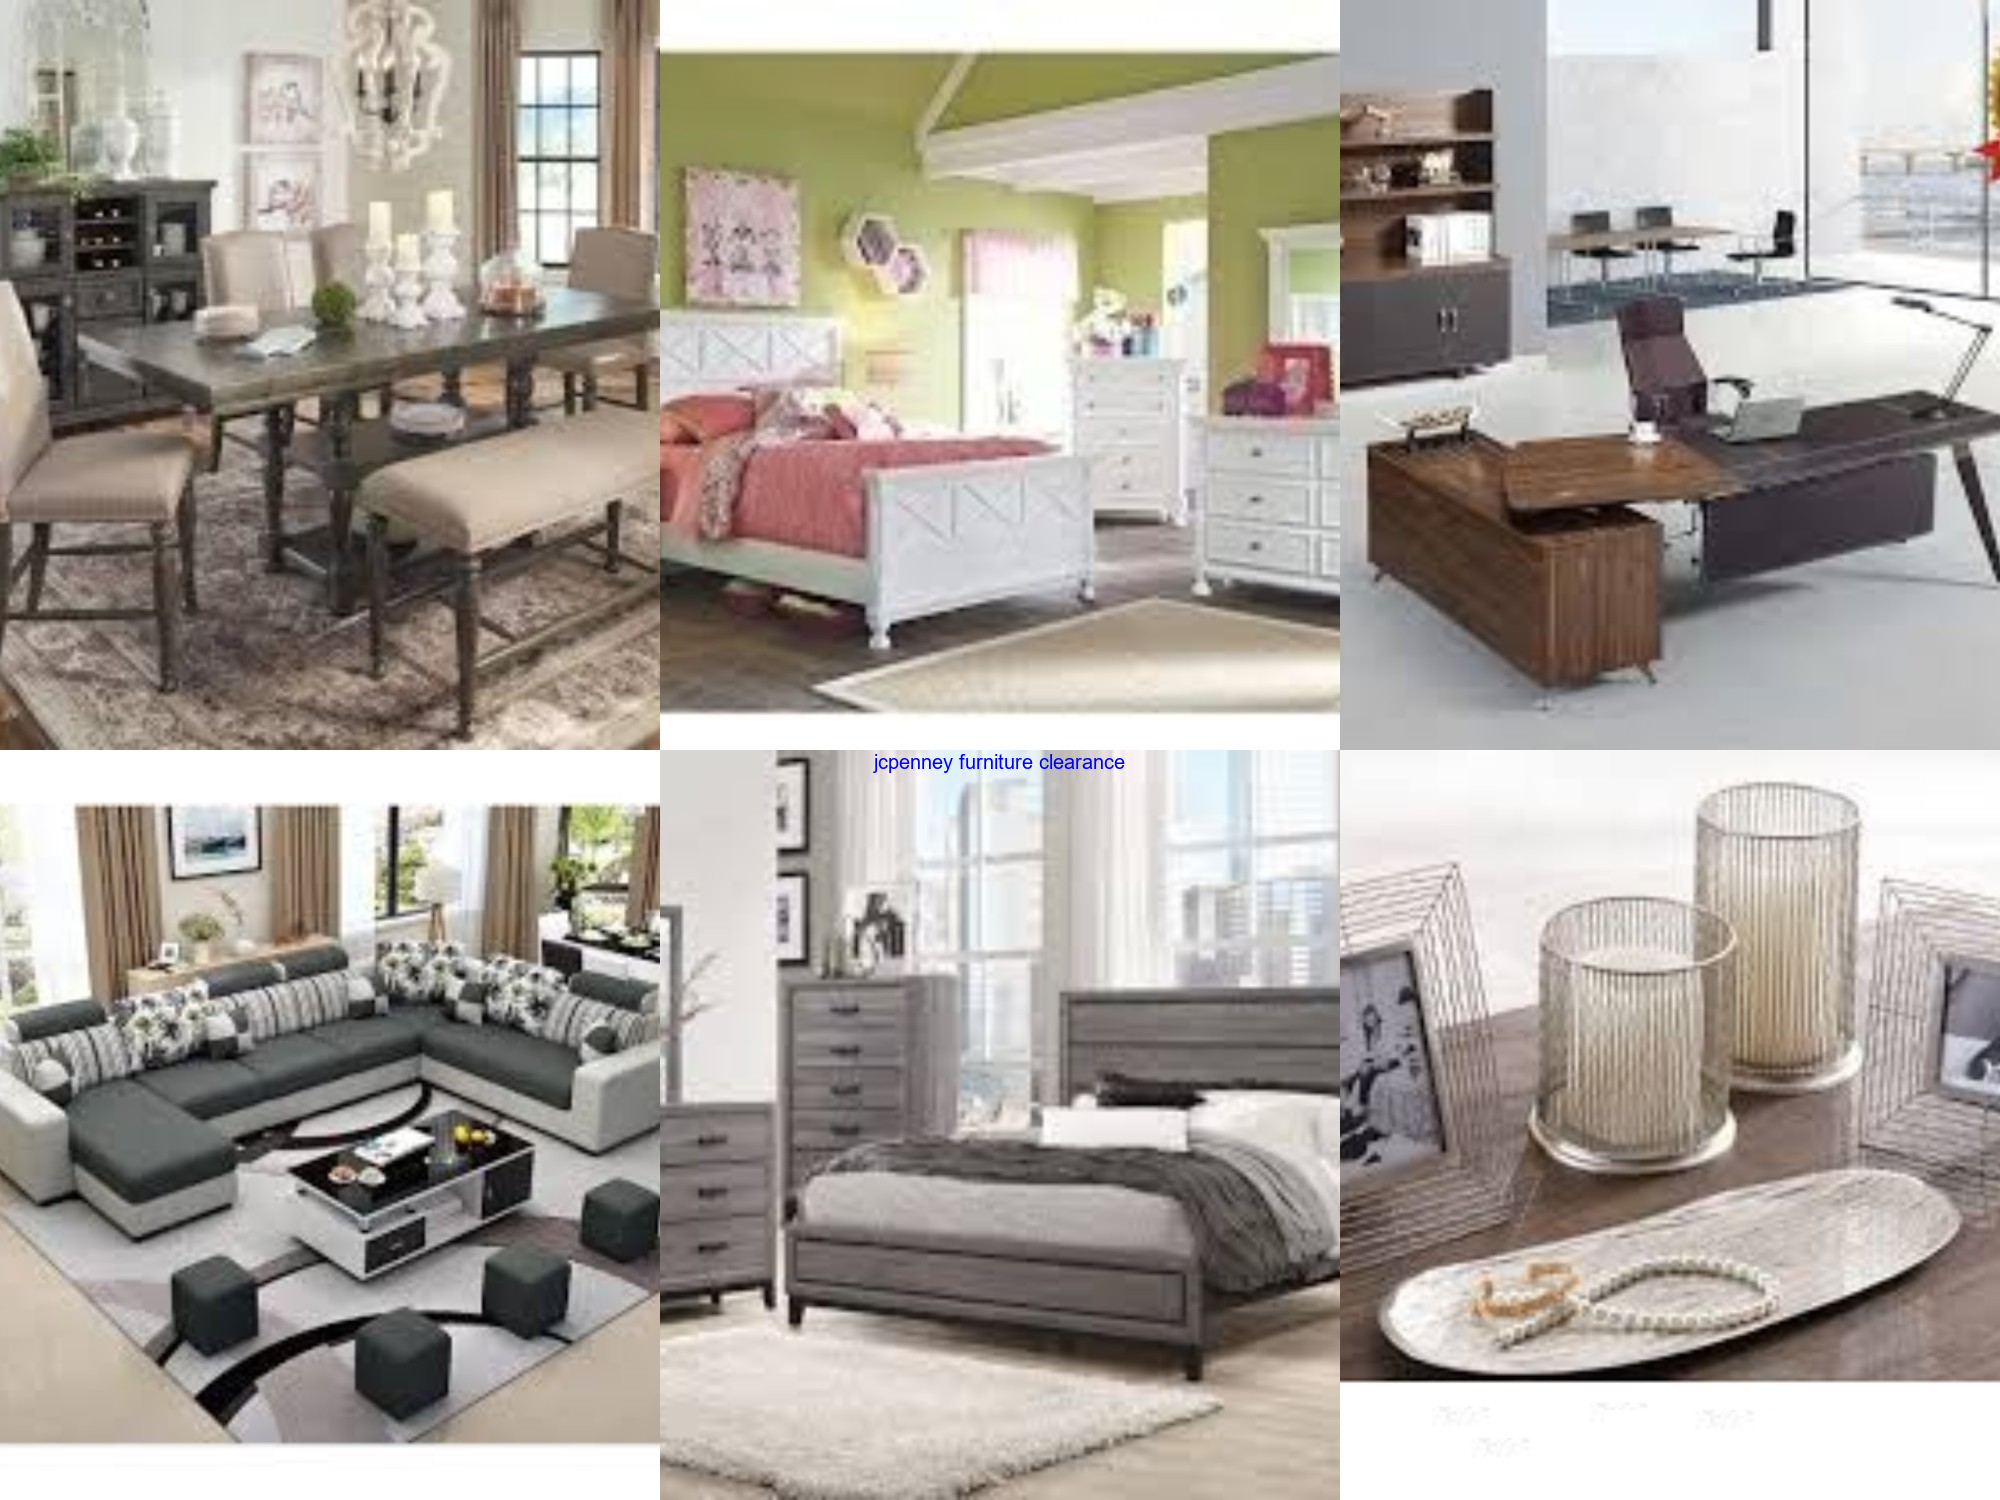 Jcpenney Furniture Clearance In 2020 Value City Furniture Ashley Furniture Furniture